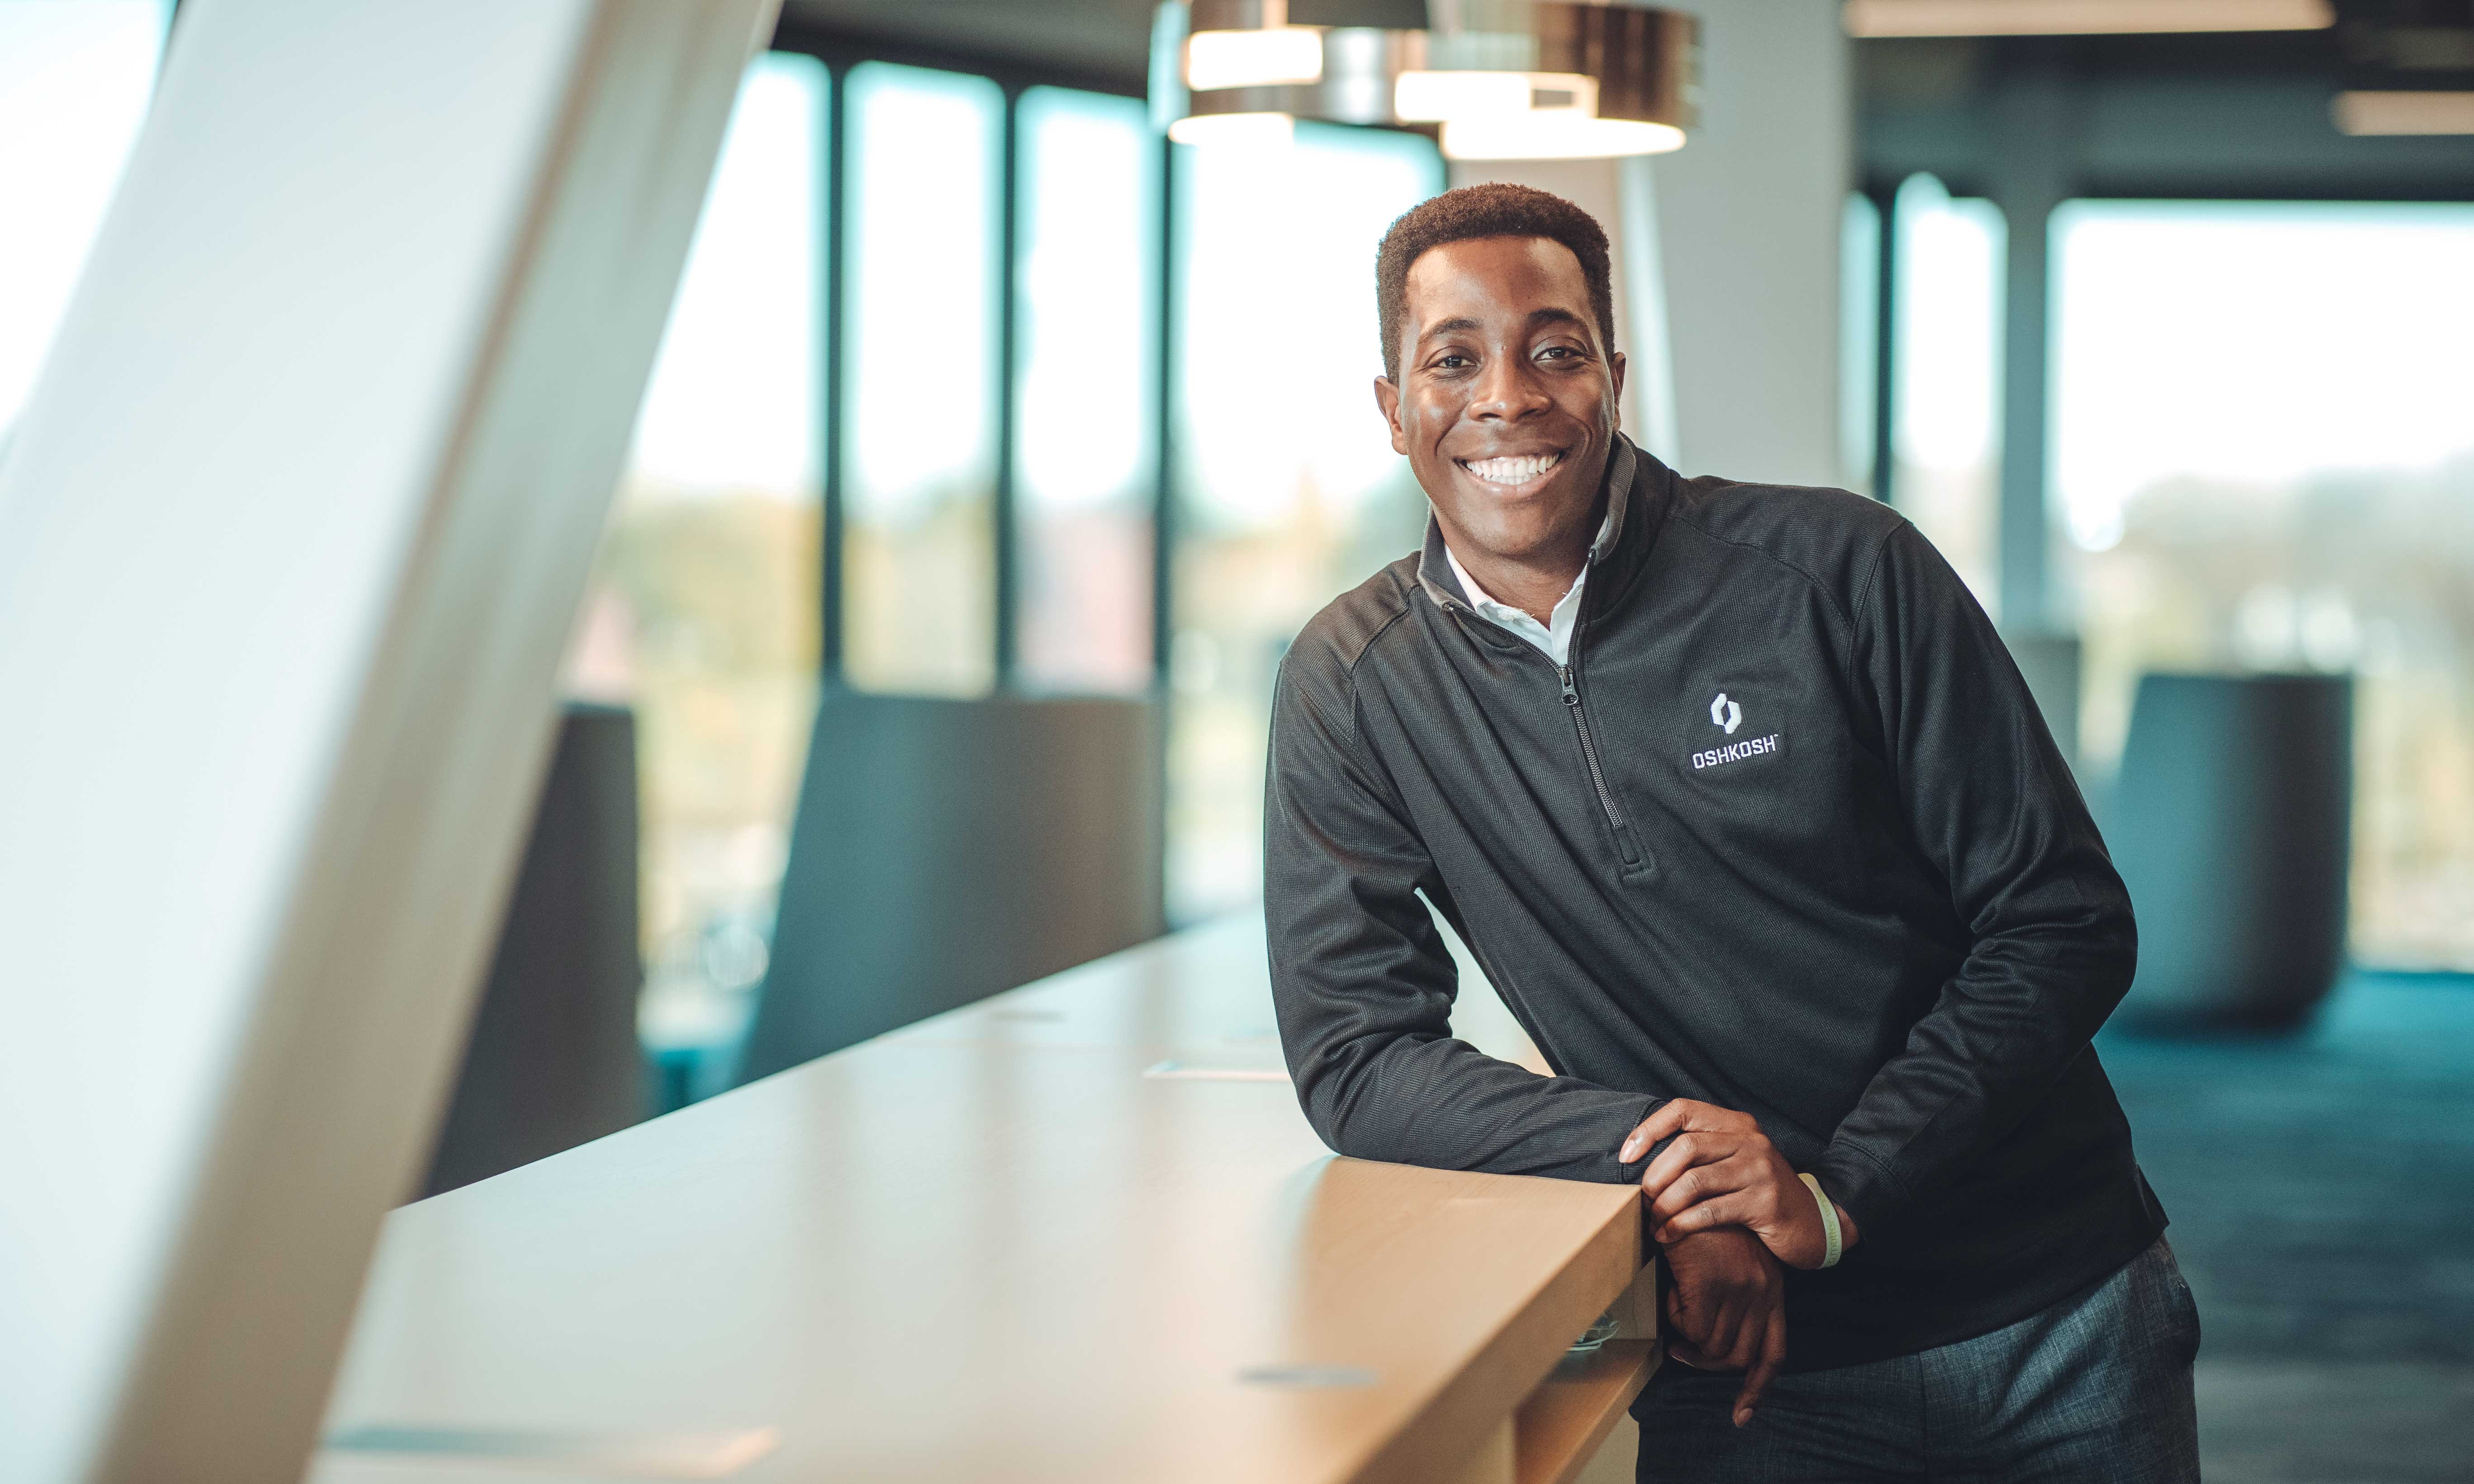 Young black man wearing a black Oshkosh 1/4 zip sweatshirt standing at a tall table in an office setting